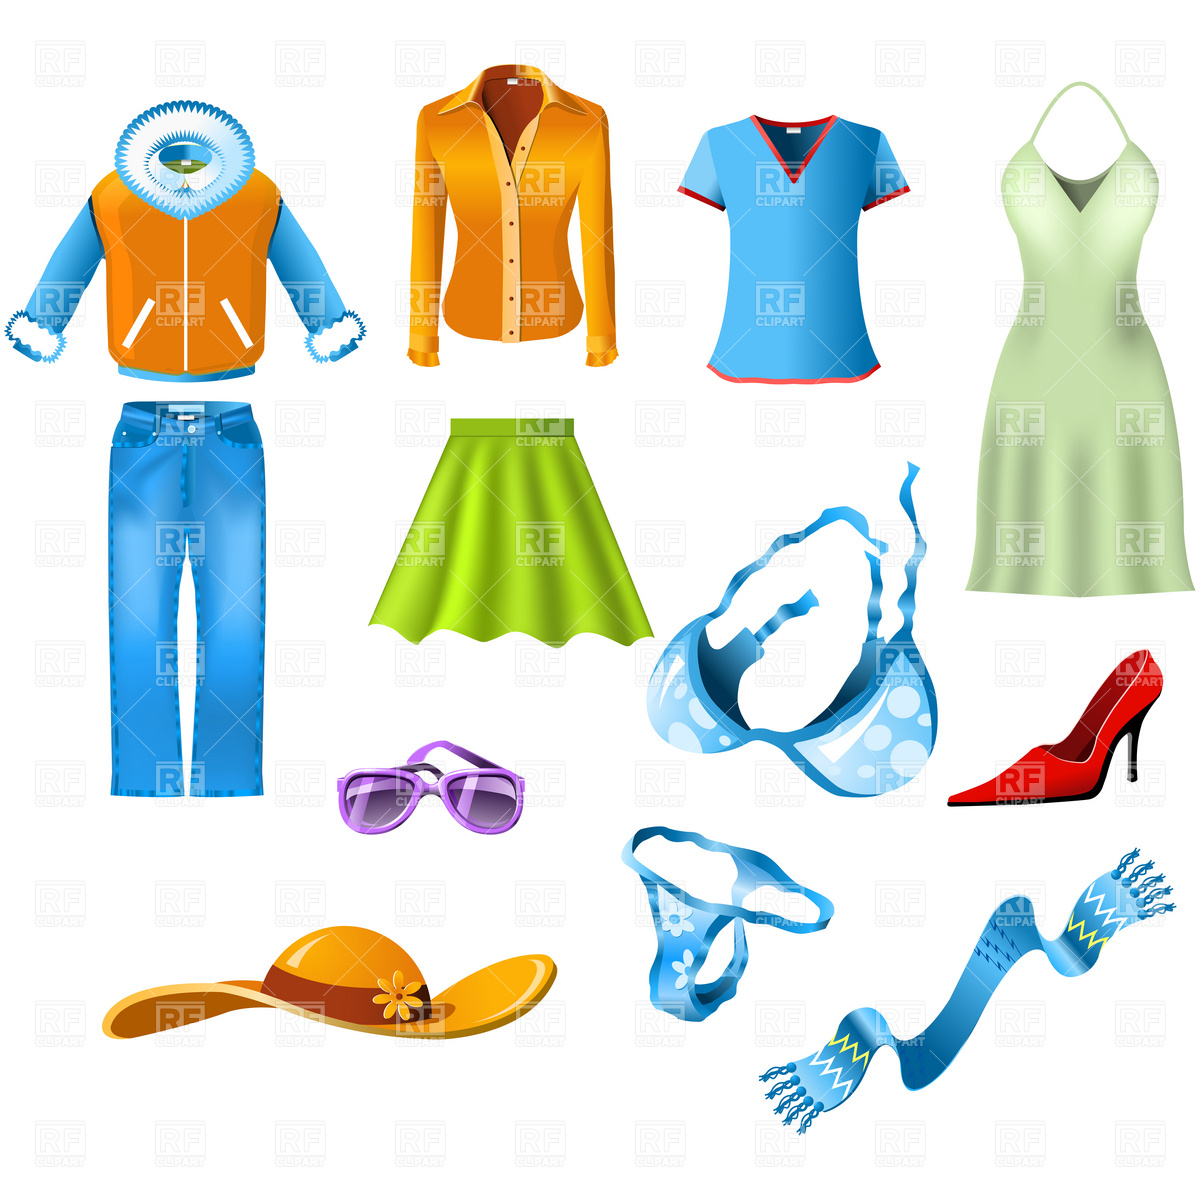 See you soon wearing clipart rainy outfit images image library stock Clothing fashion clothes clipart kid - Clipartix image library stock